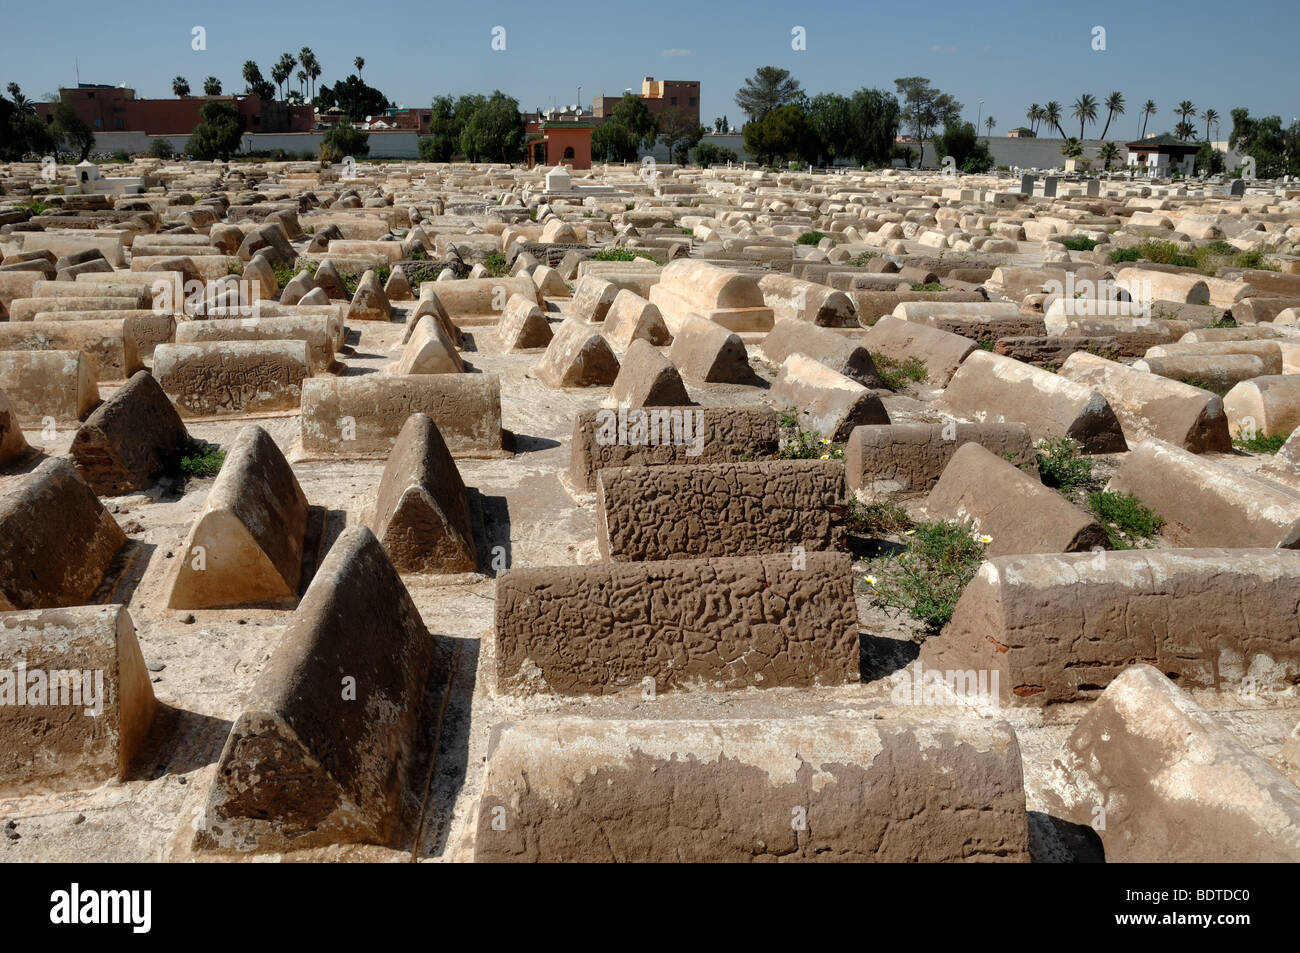 Graves, Tombs or Tombstones in the Jewish Cemetery Mellah Marrakesh Morocco - Stock Image